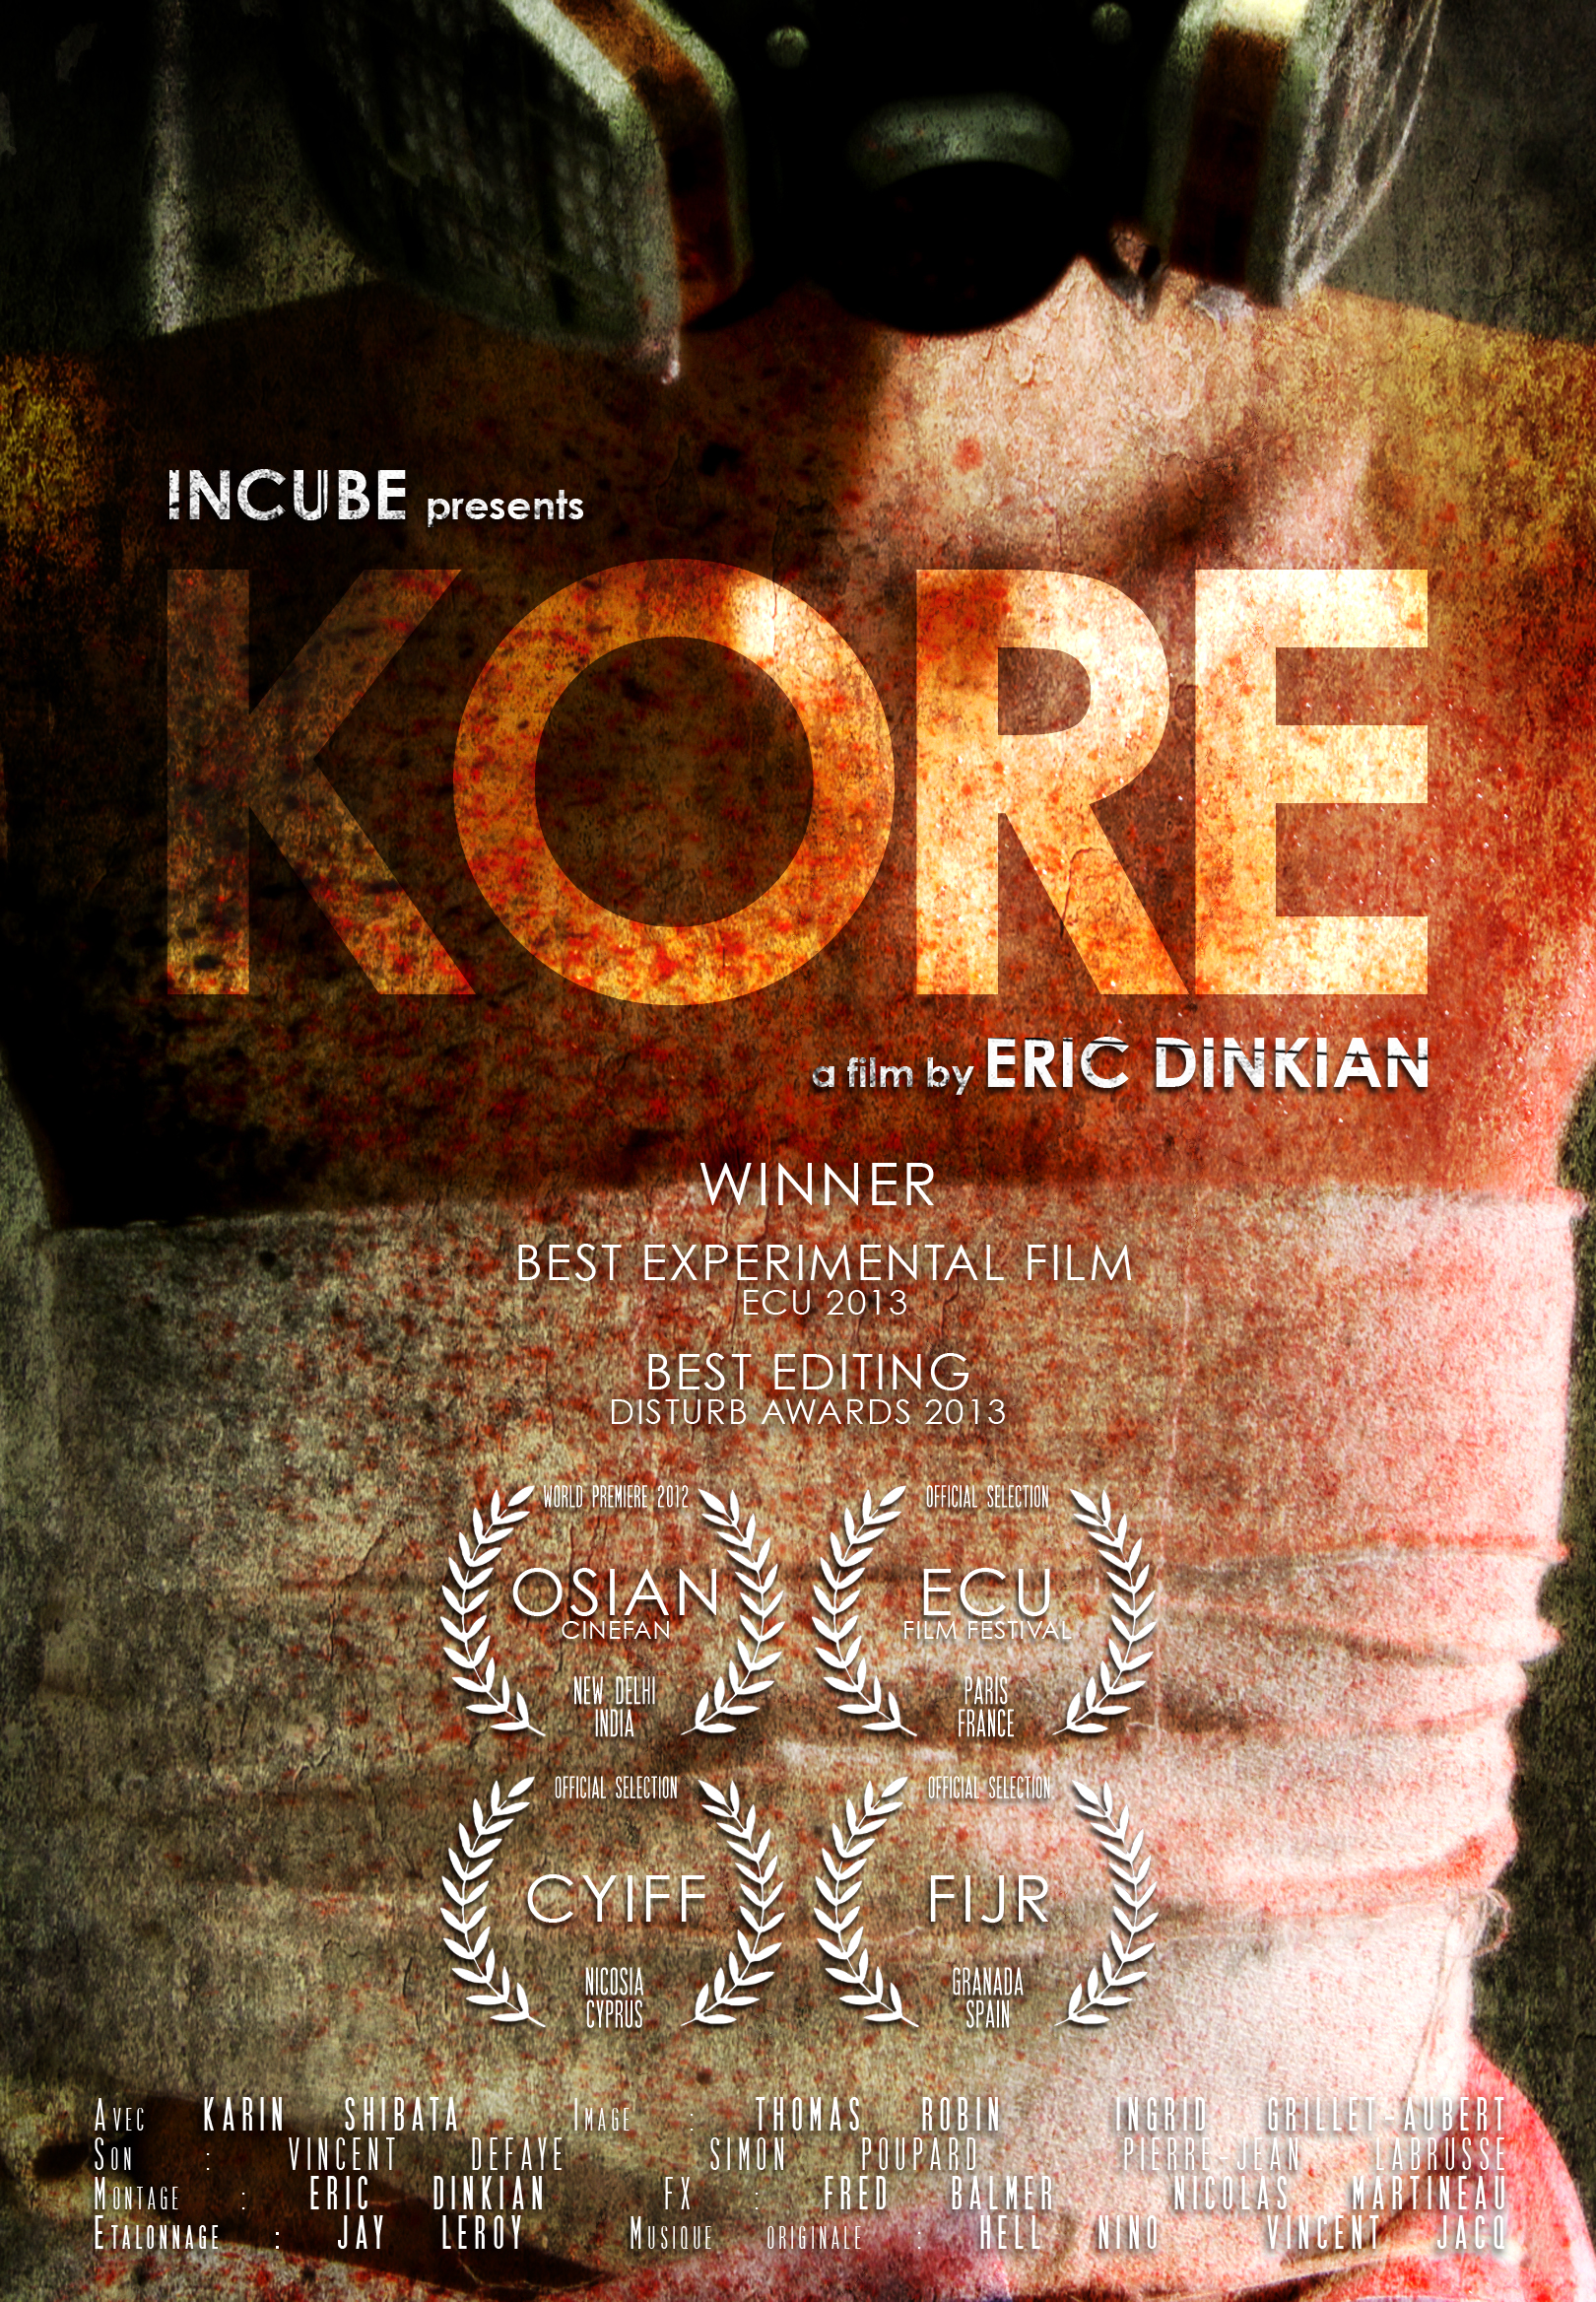 kore_poster_02